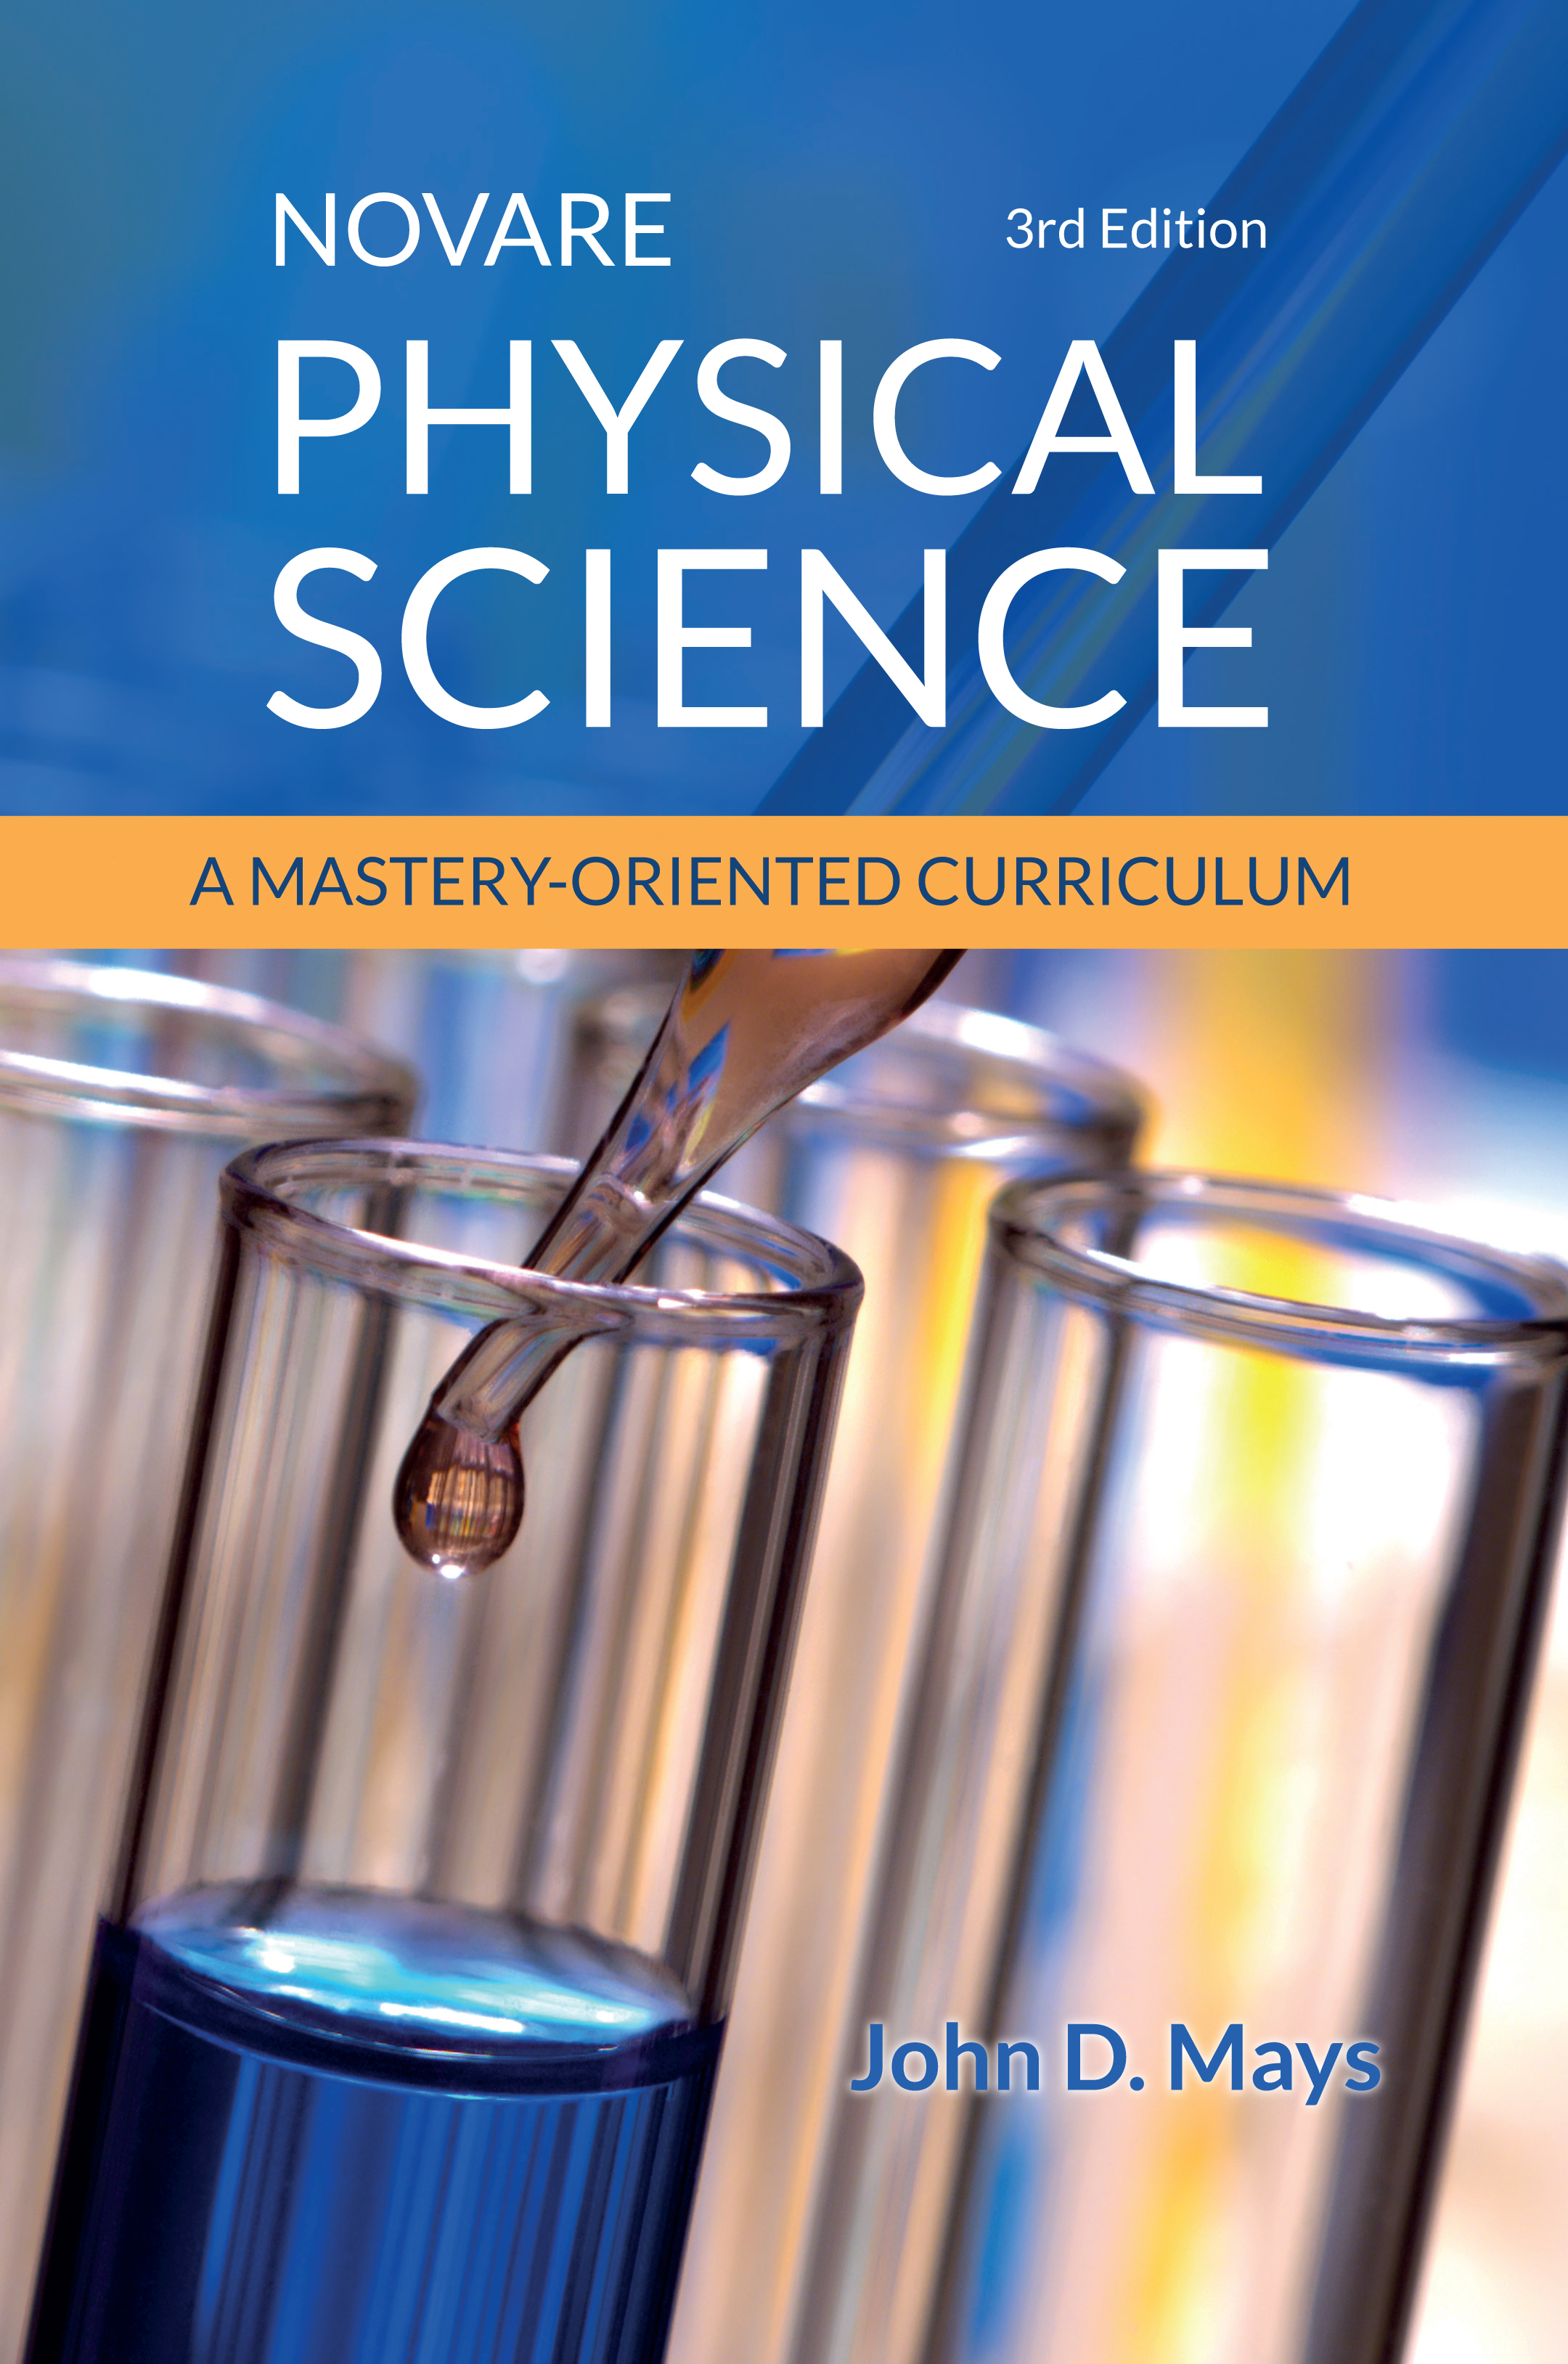 Novare Physical Science 3rd Edition (1-year license)